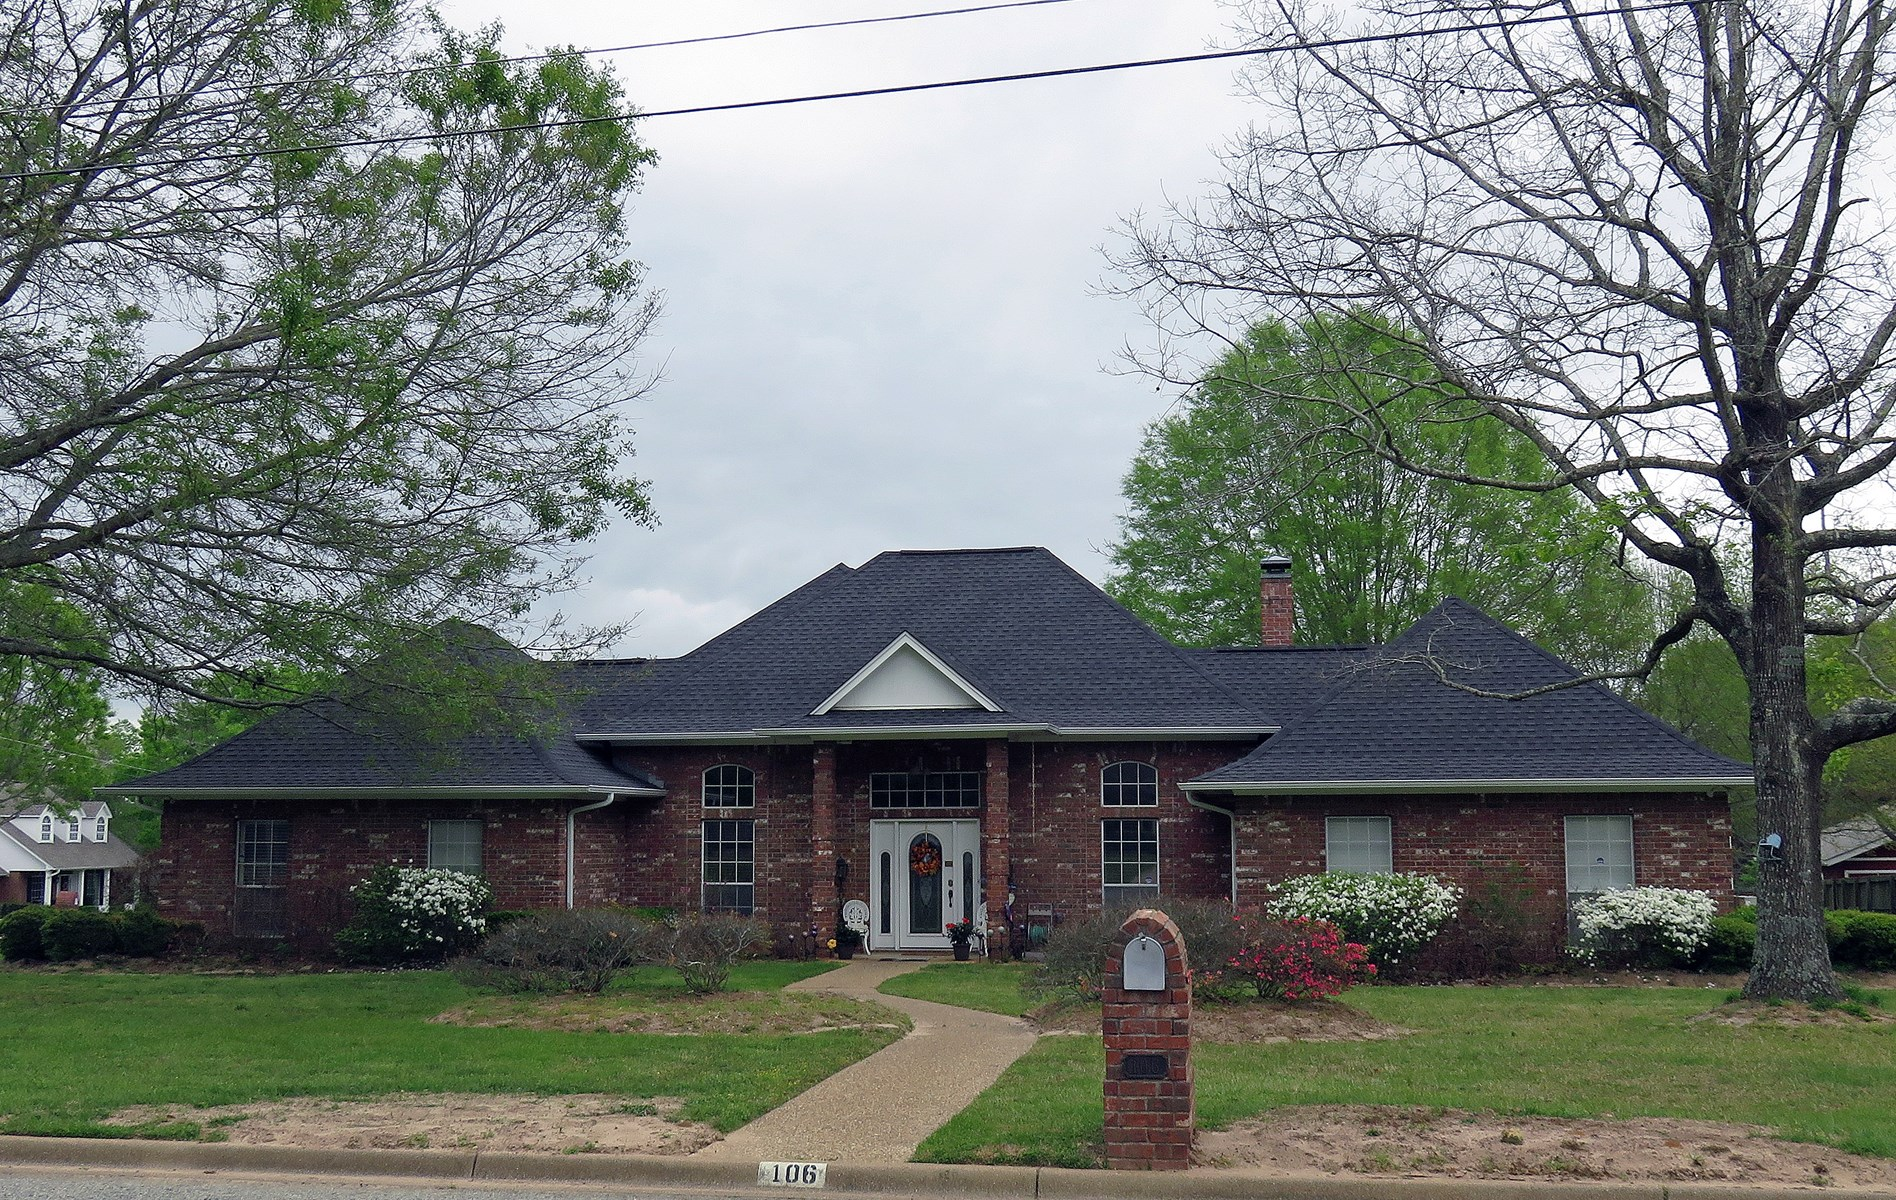 3/3 HOME FOR SALE IN WOODGATE ADDITION PALESTINE TEXAS